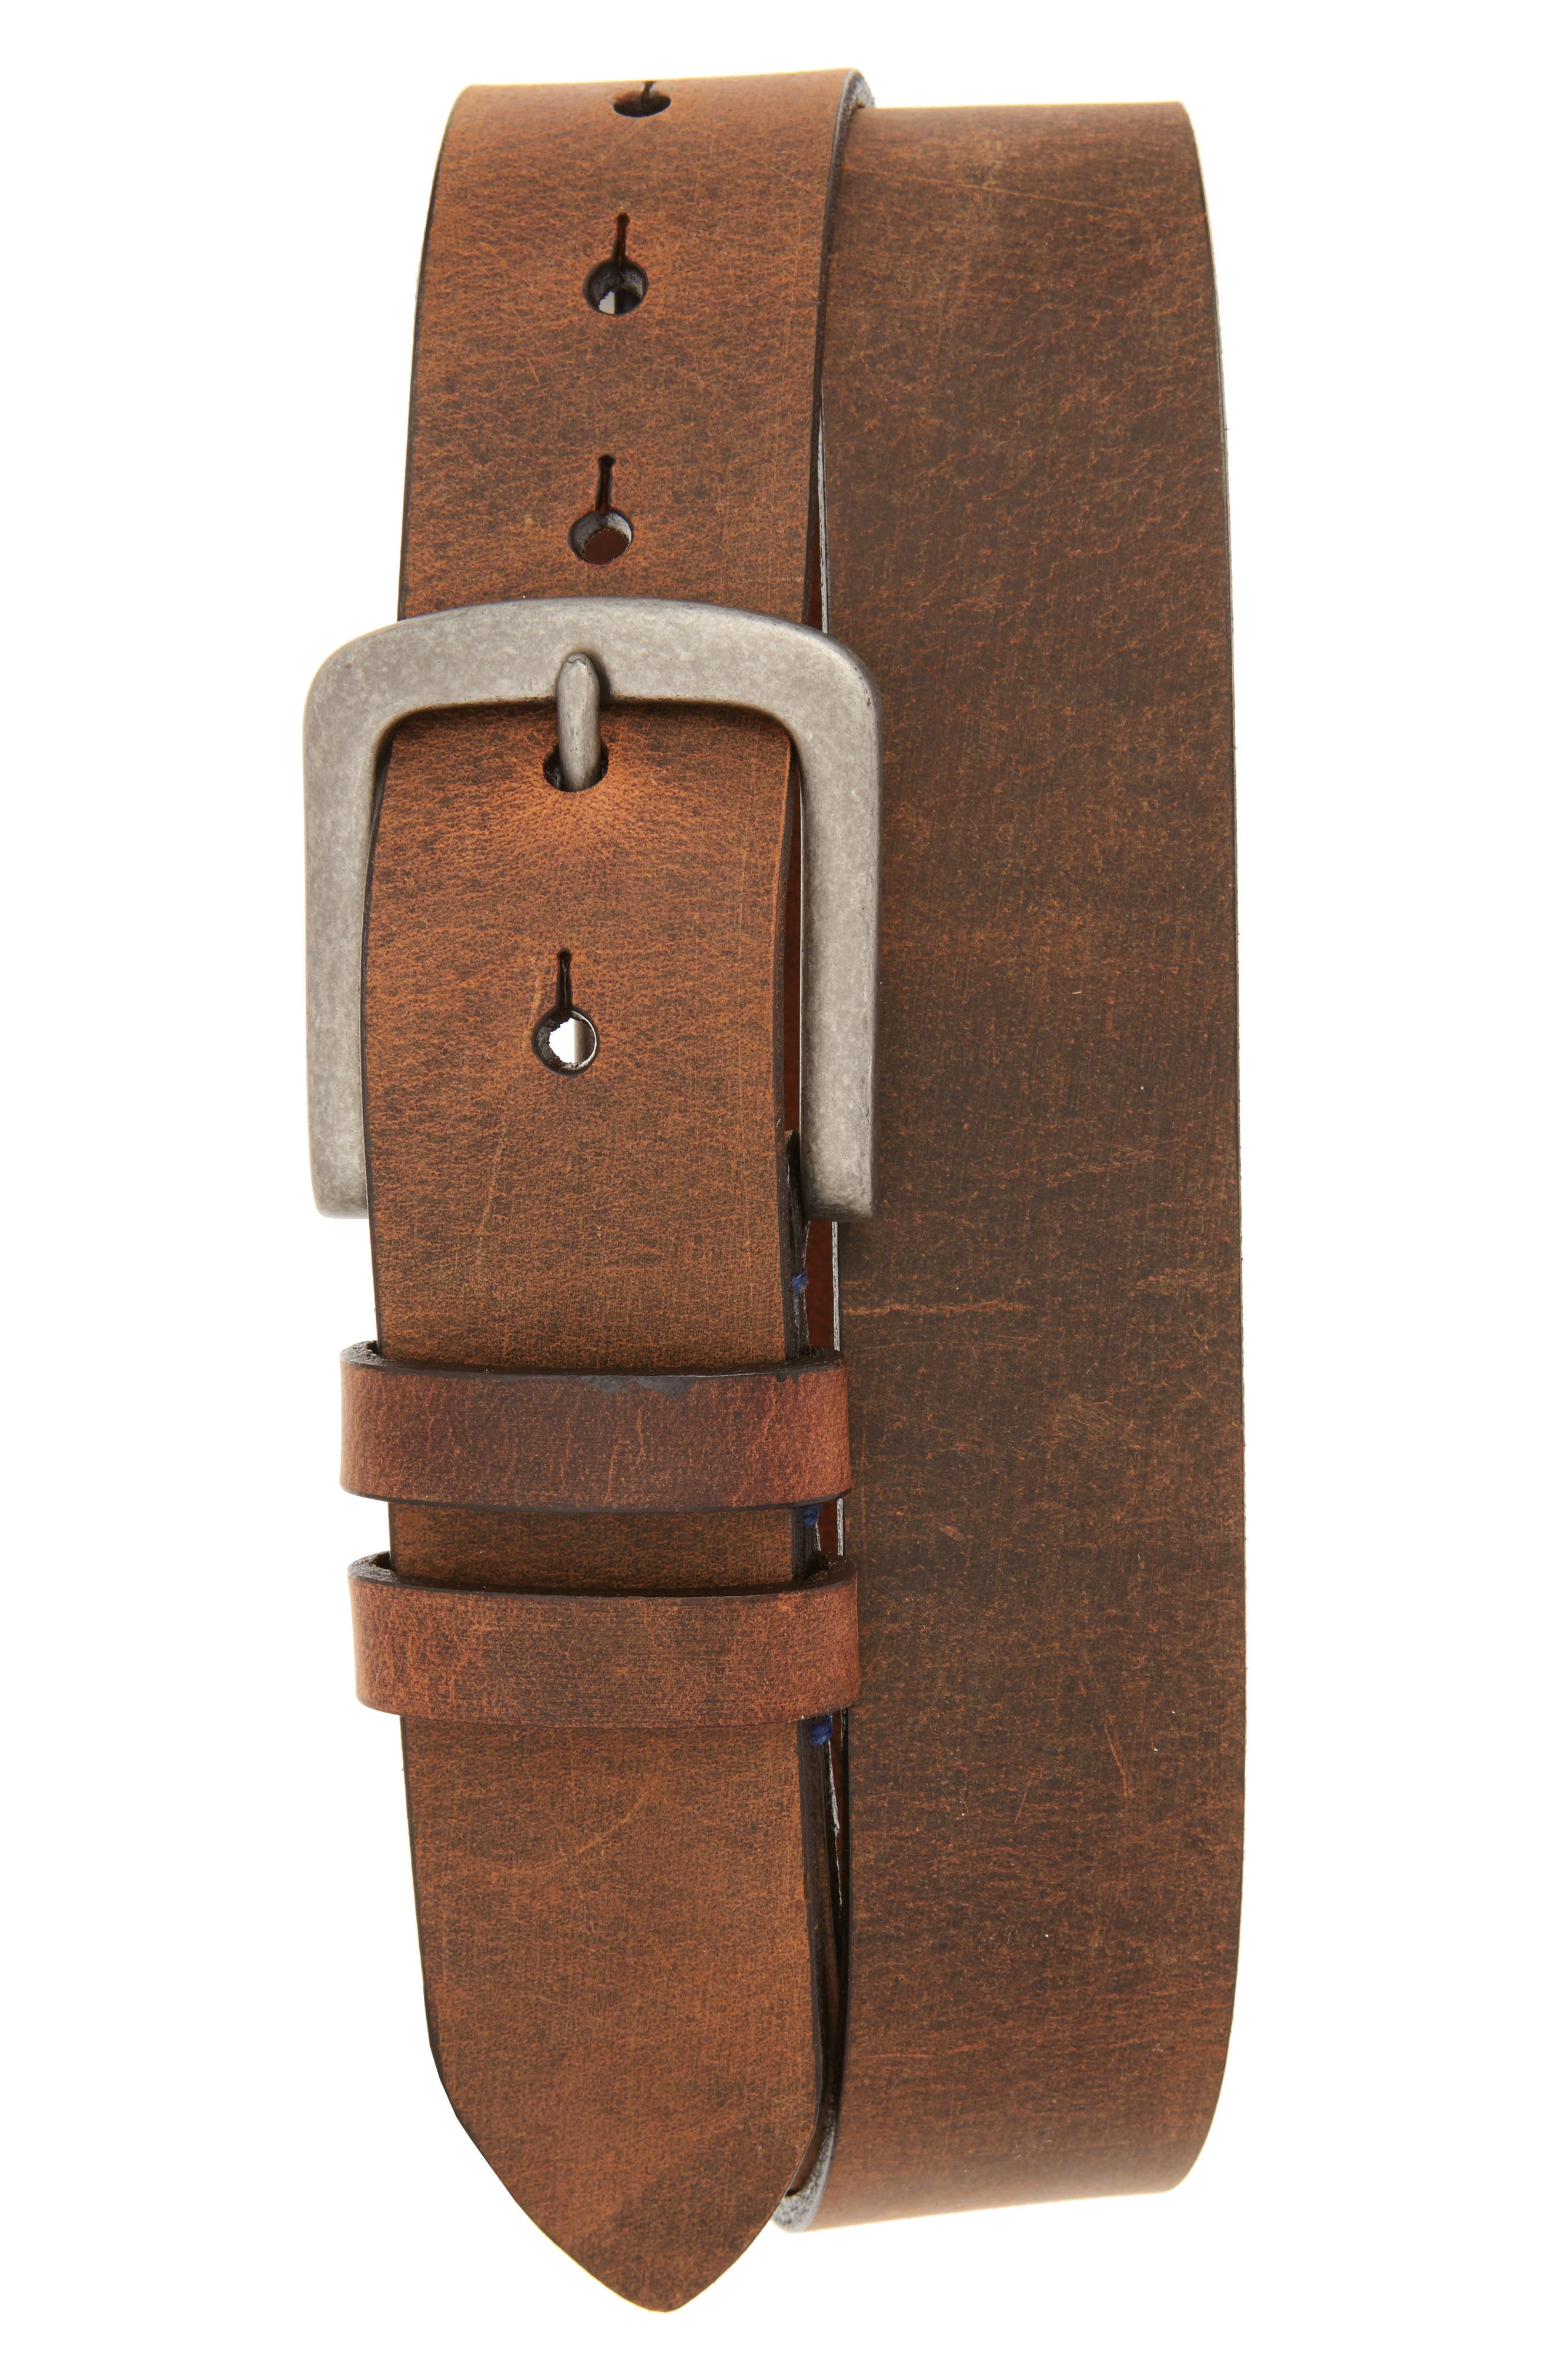 Main Image - Torino Belts Distressed Waxed Harness Leather Belt